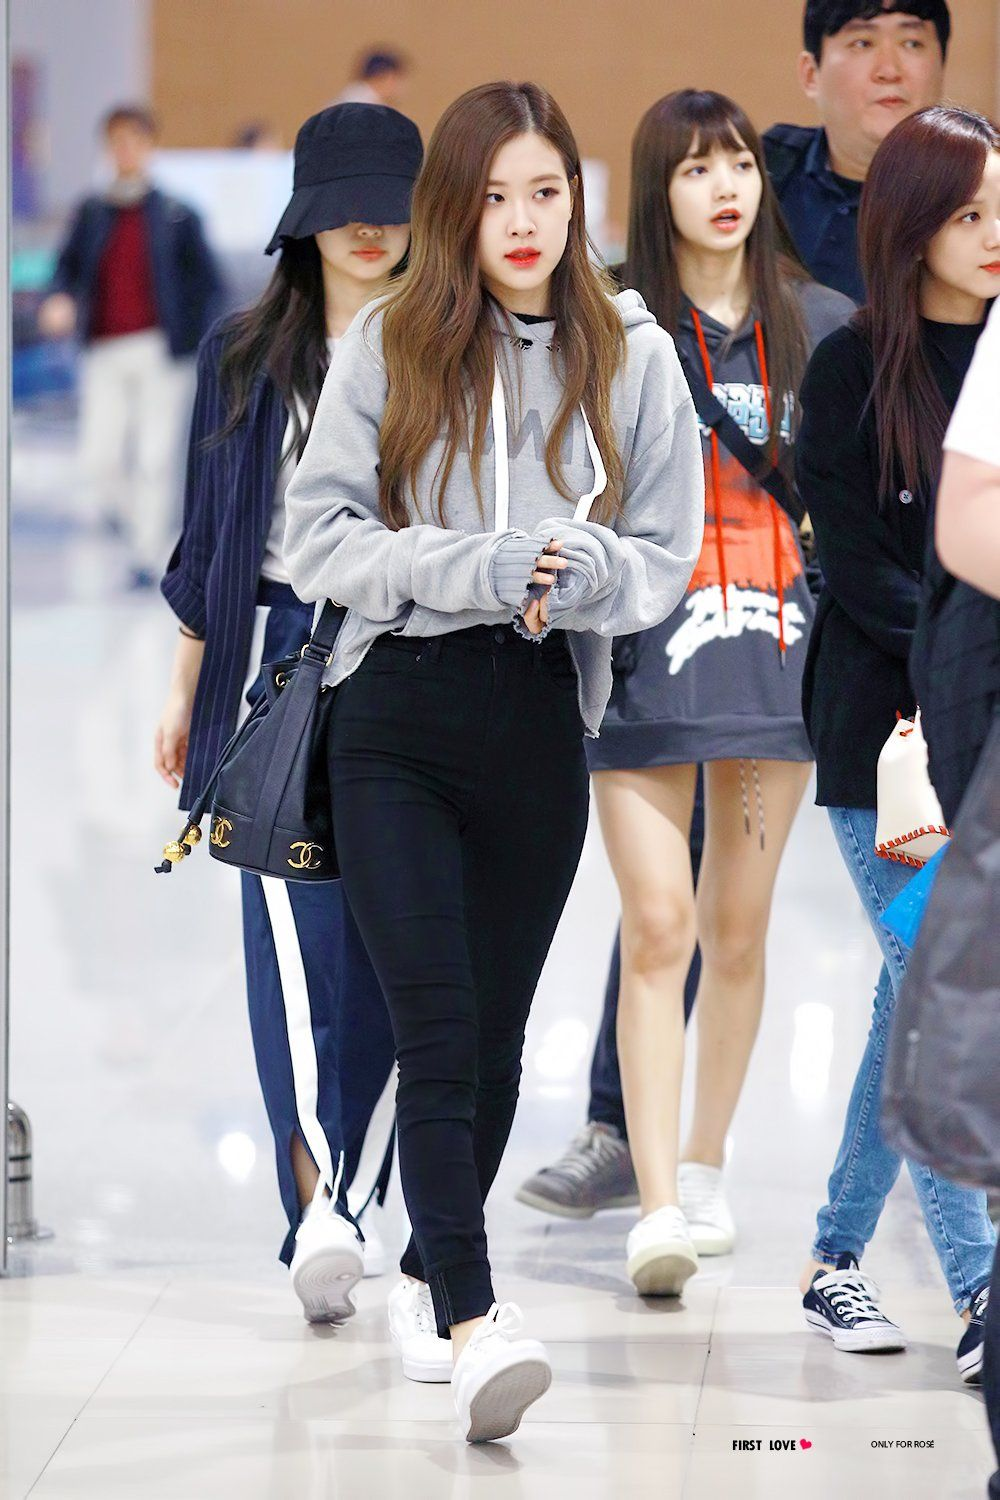 Pin By Jugu On Rose Blackpink Airport Style Pinterest Blackpink